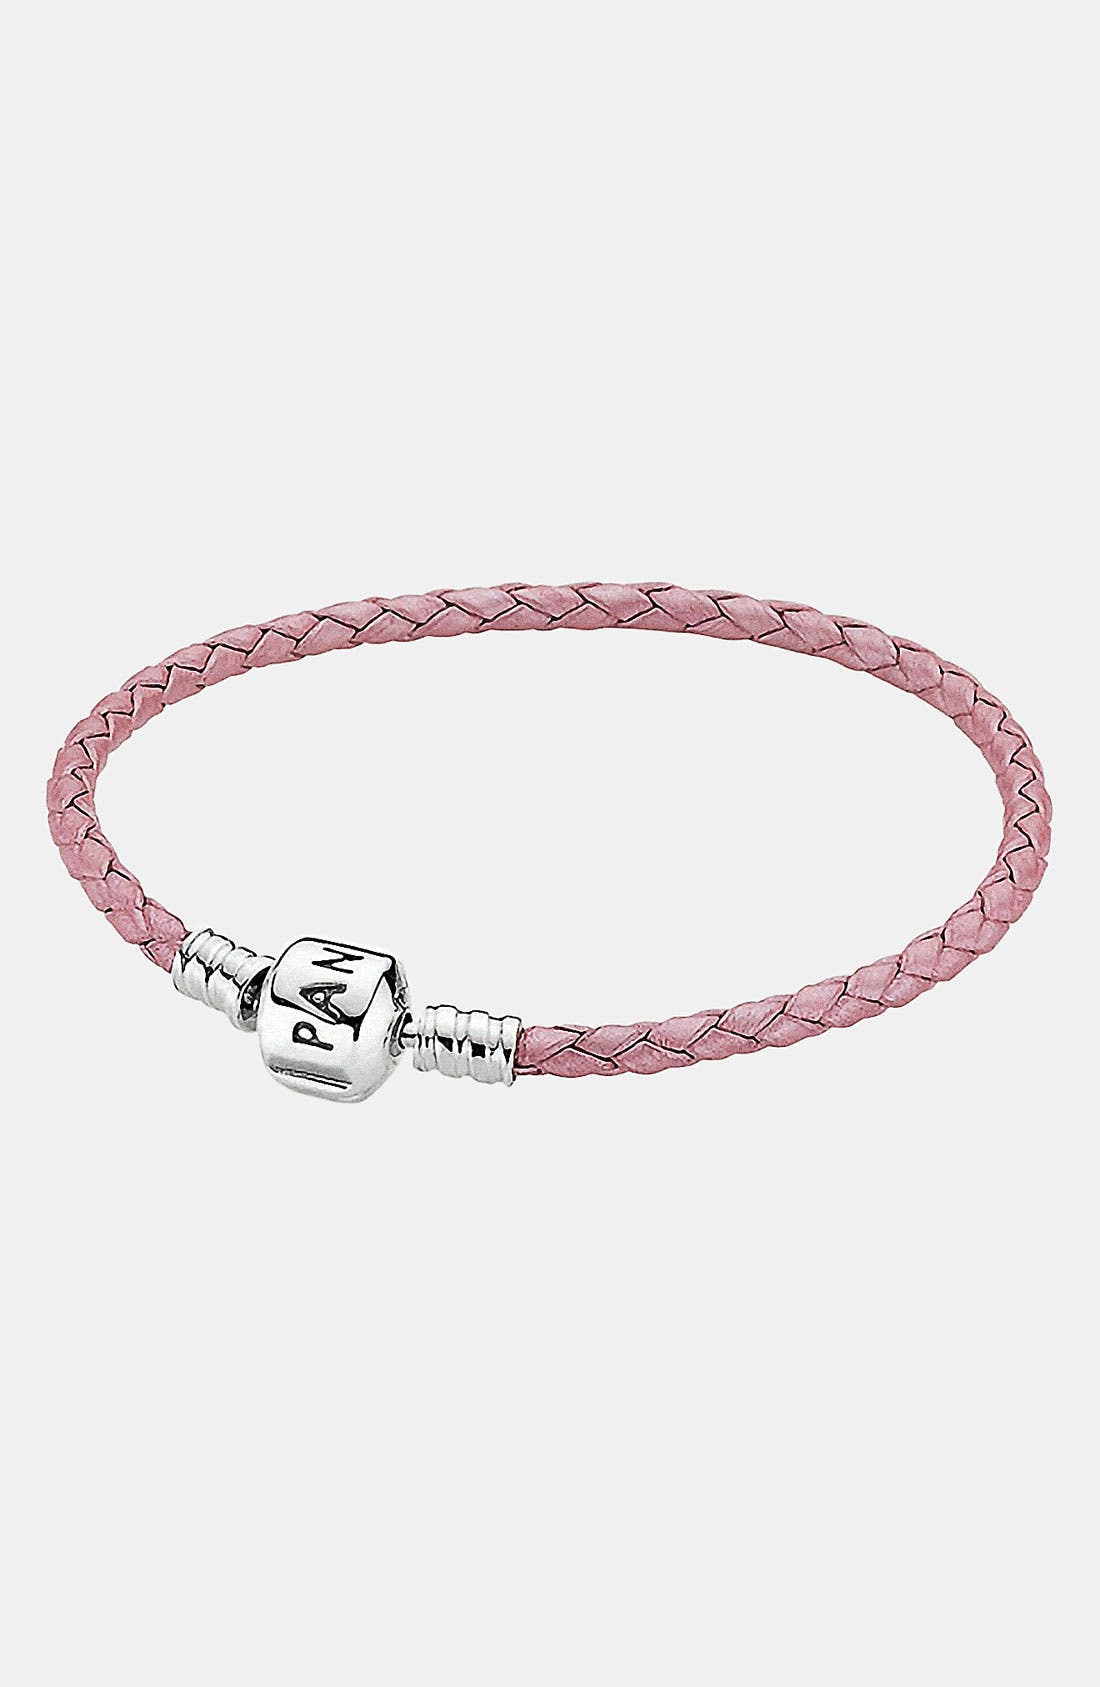 Main Image - PANDORA Iridescent Woven Leather Charm Bracelet